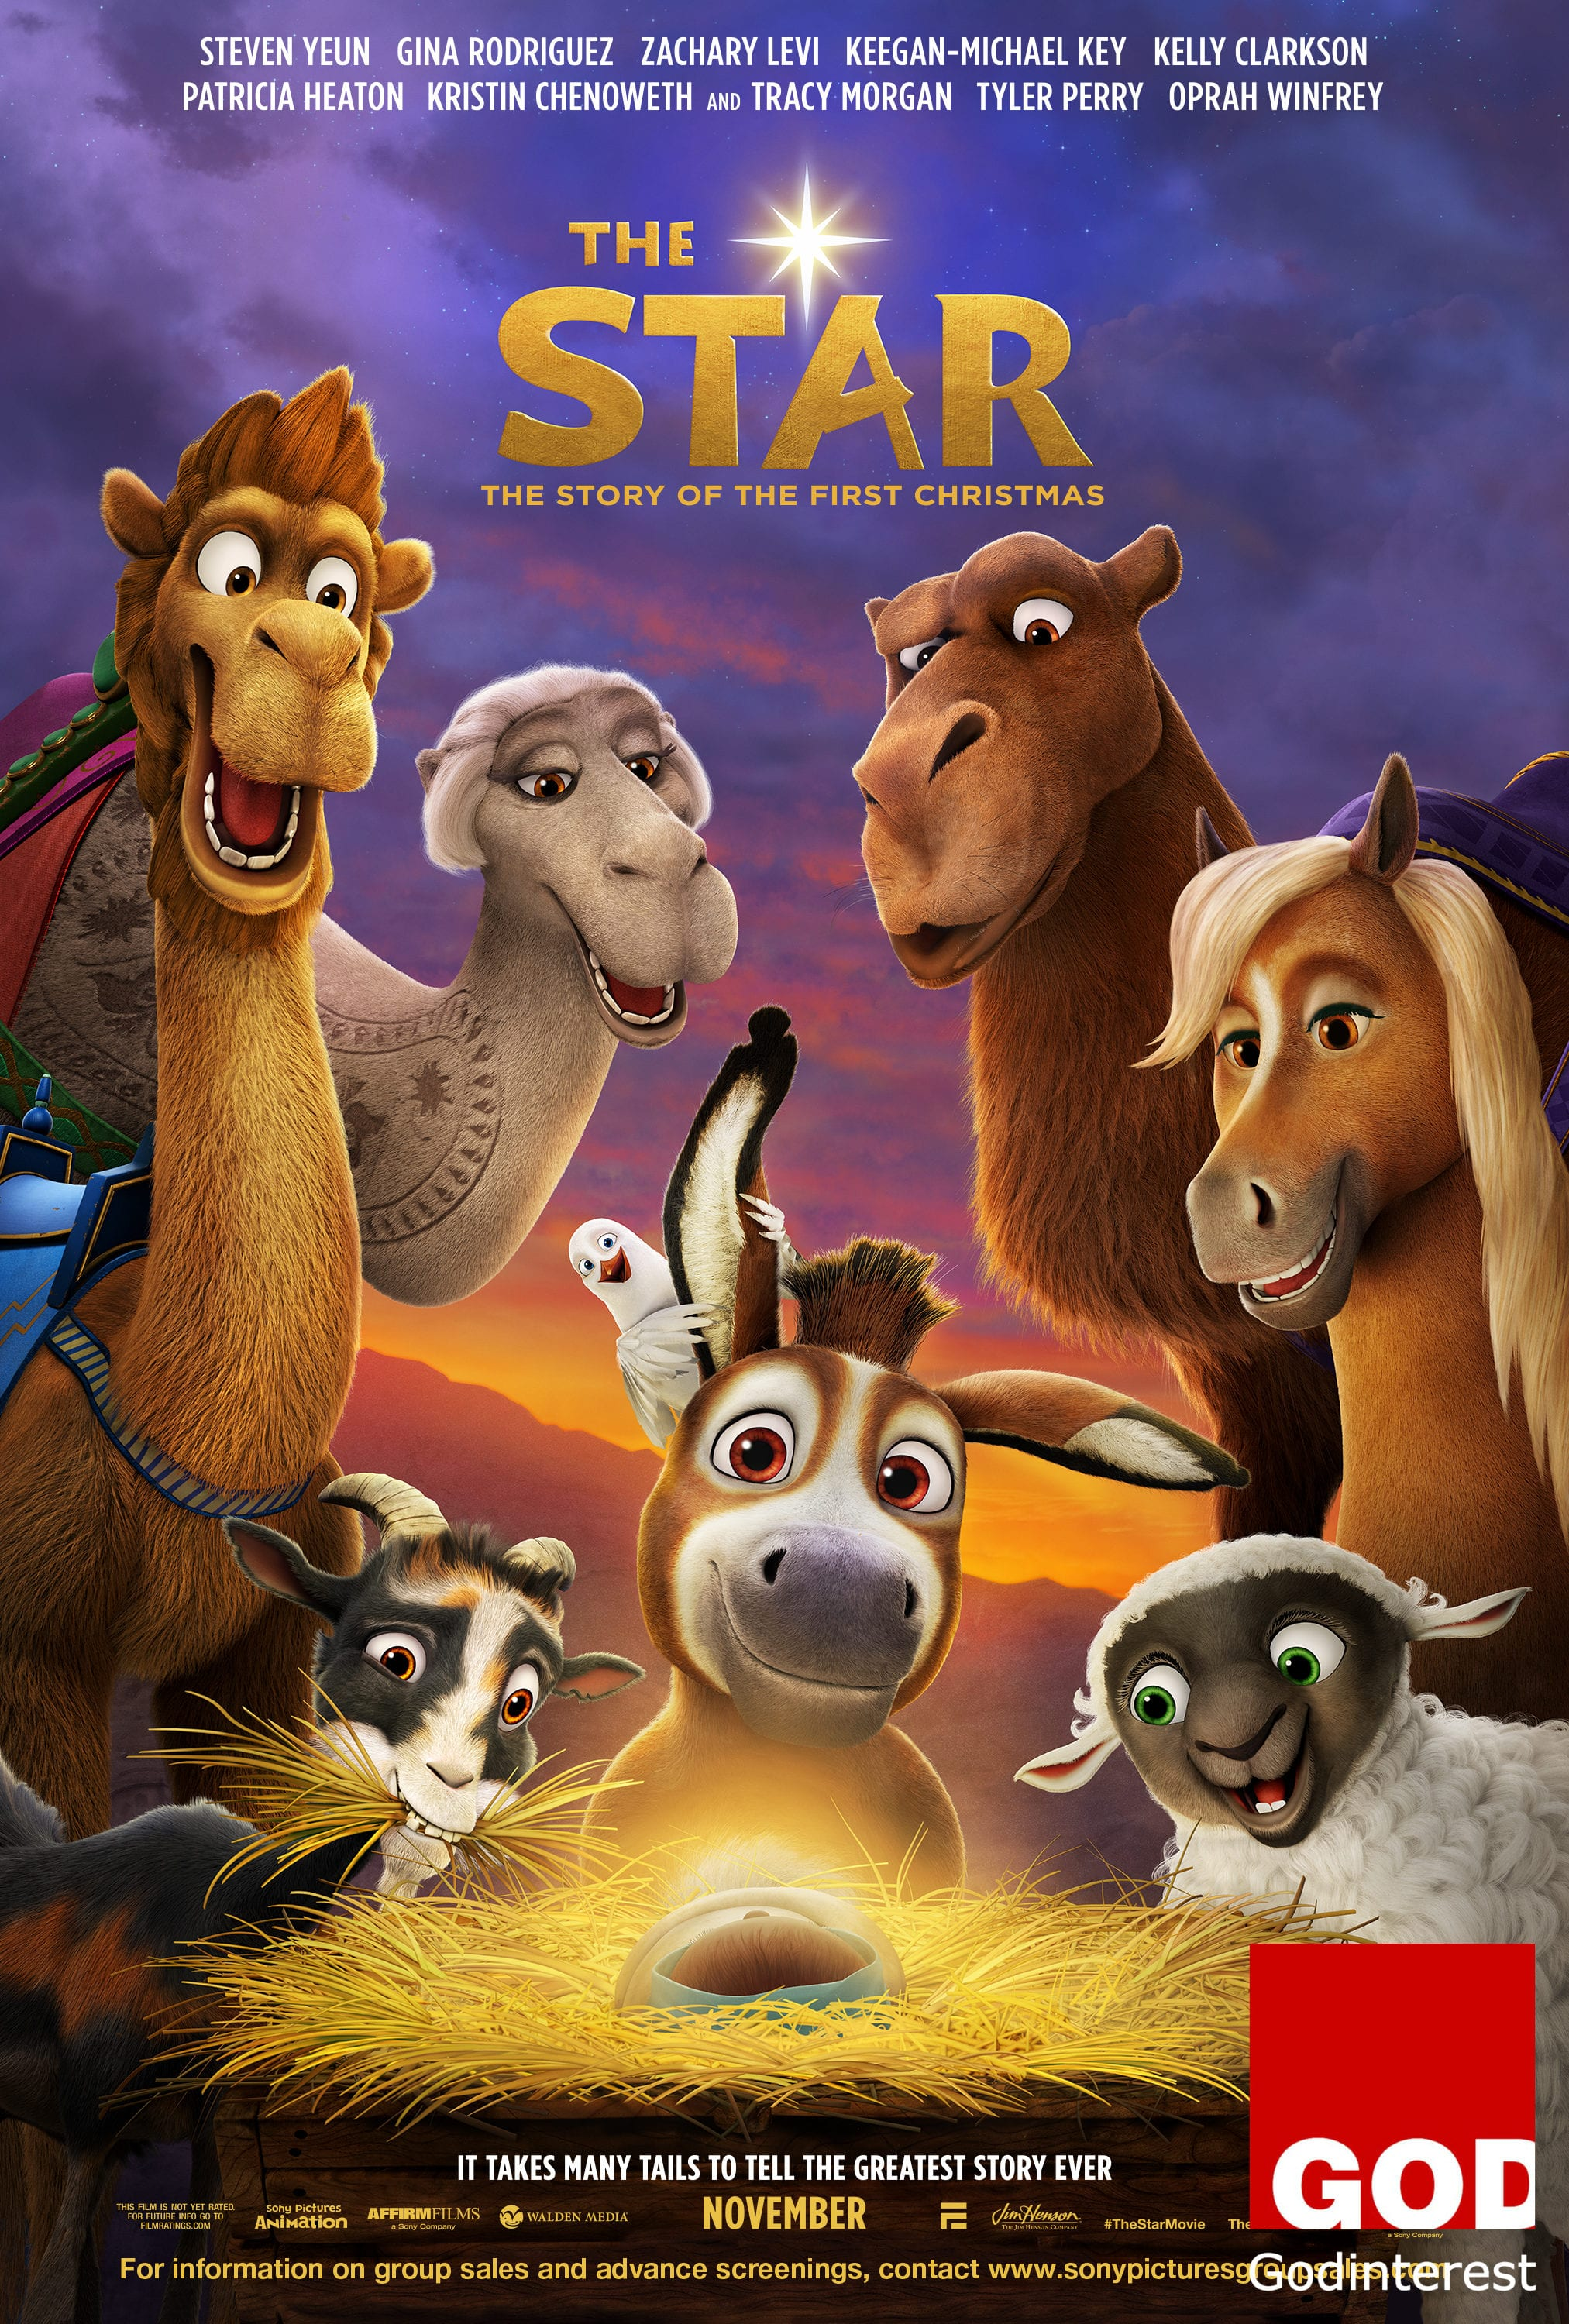 New in Faith & Family from Sony Pictures Animation: THE STAR, Godinterest Christian Magazine